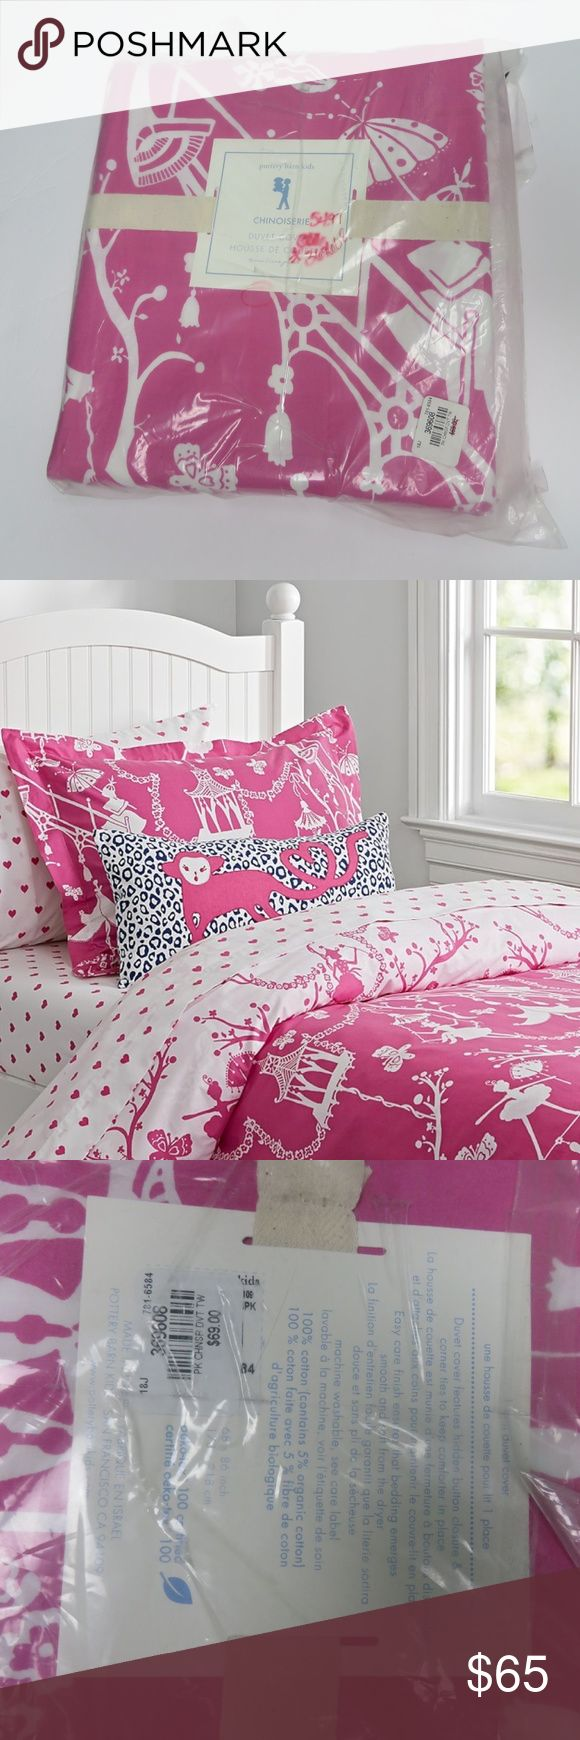 Pottery Barn Kids pink twin duvet cover Pottery barn